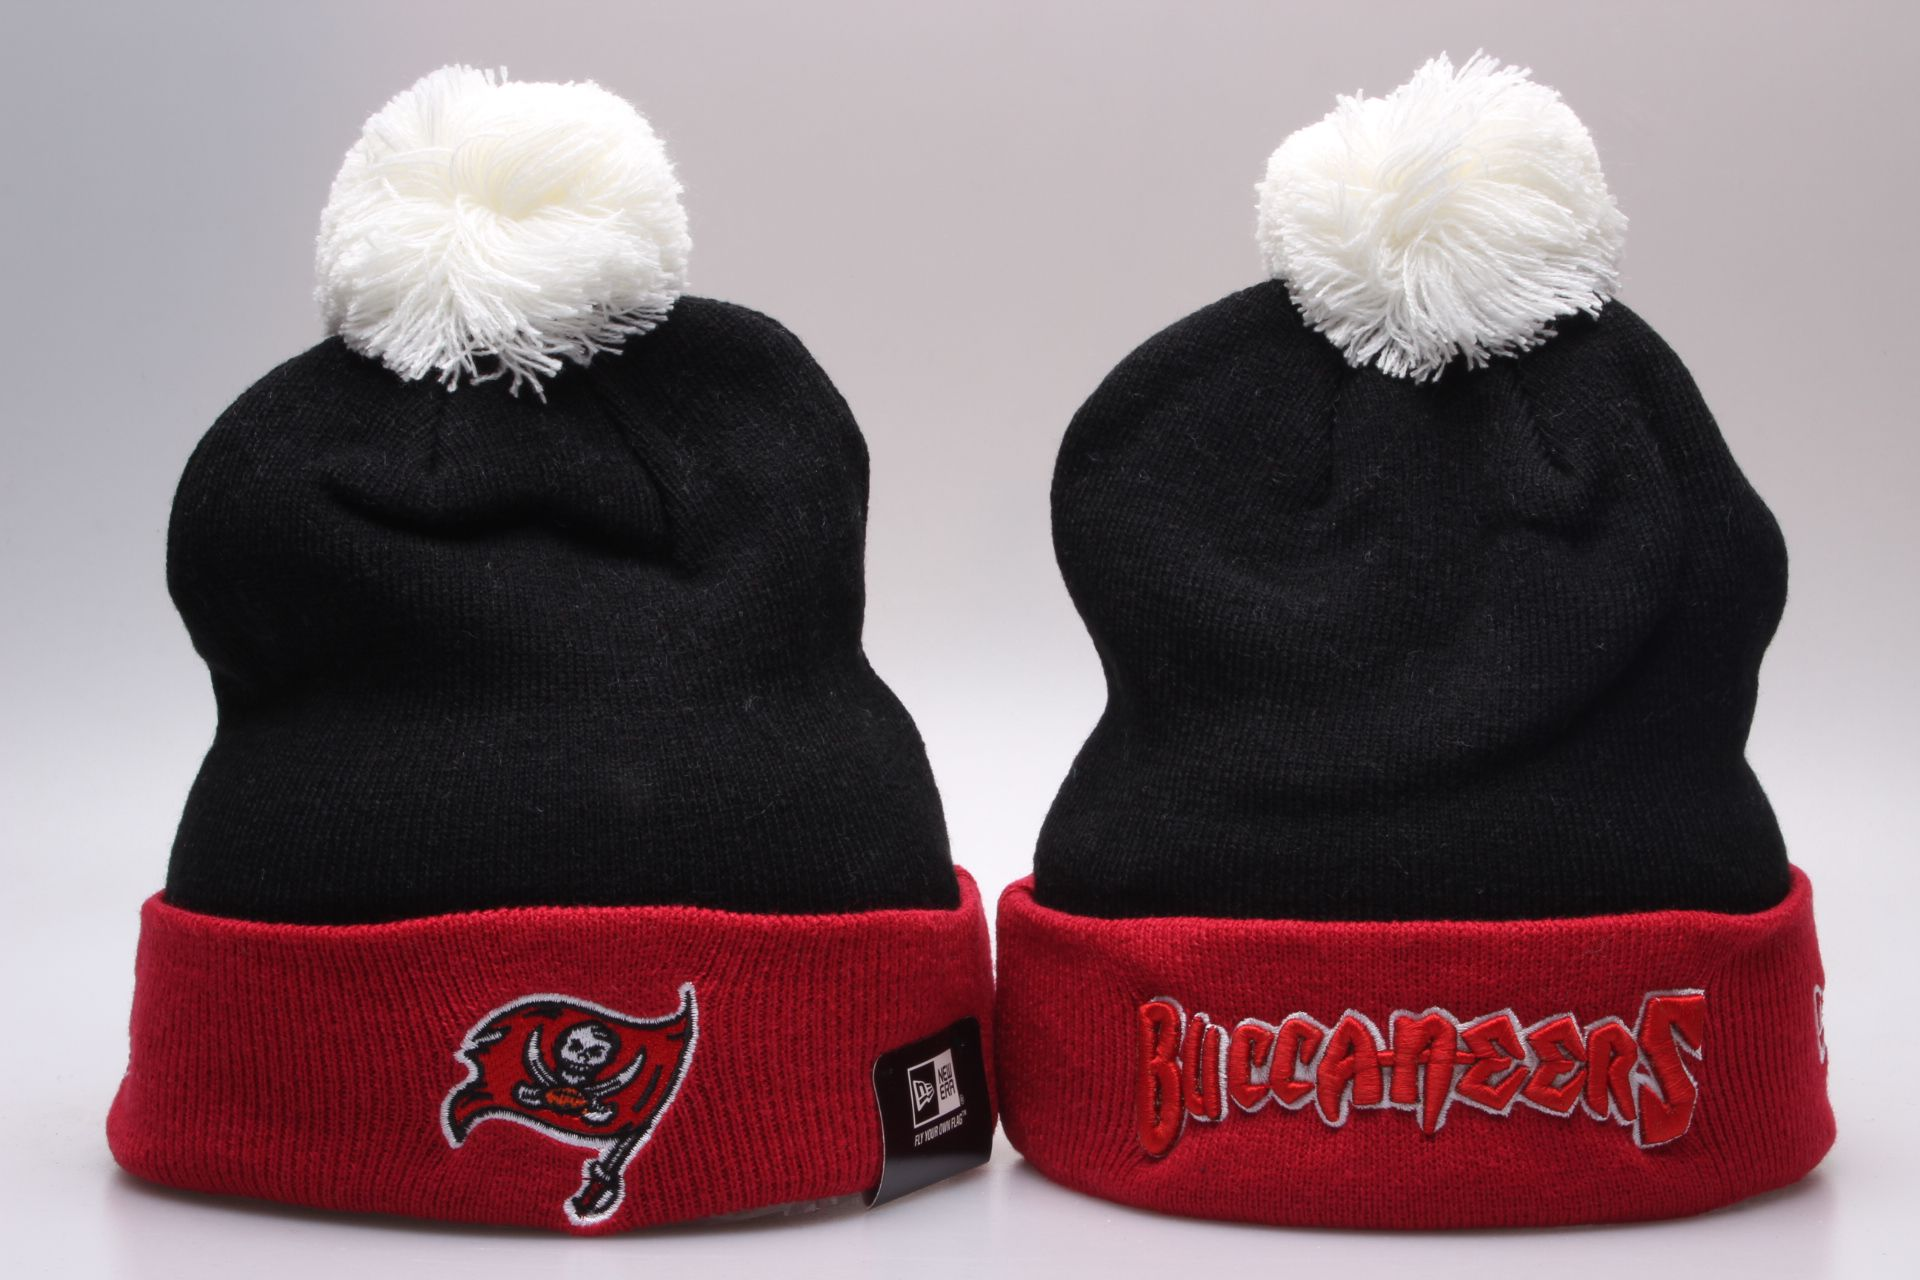 NFL Tampa Bay Buccaneers Beanie hot hat4